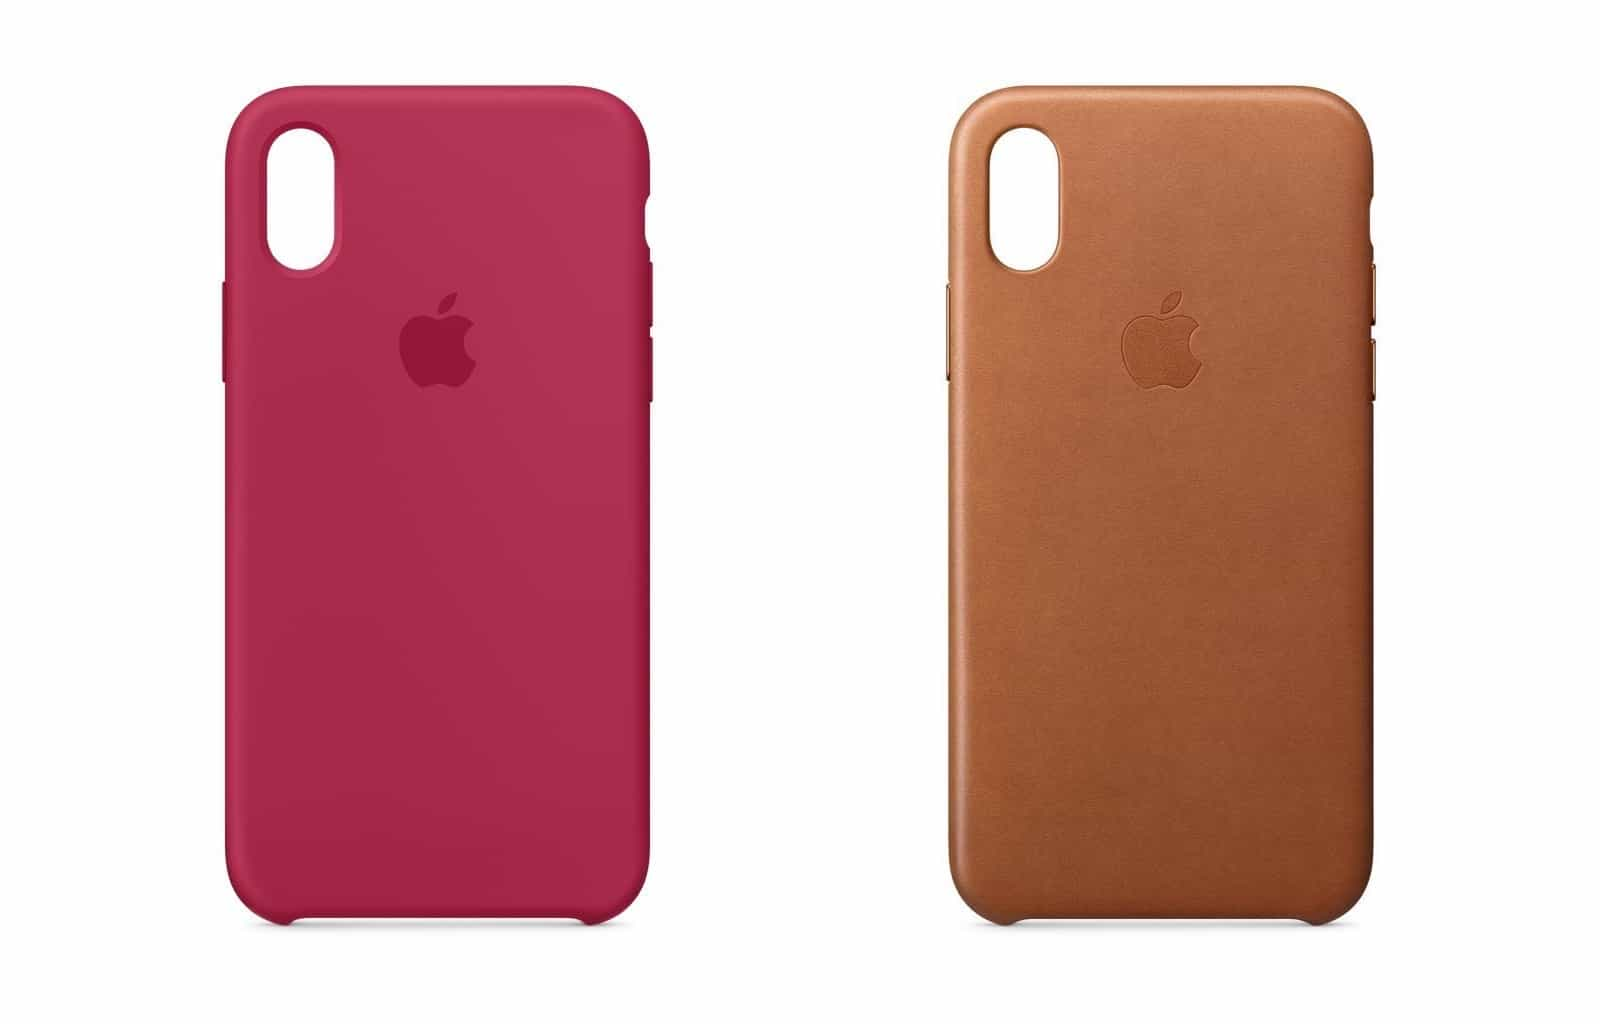 Case Für Iphone Preordered Iphone X Here 39s What To Do Next Cult Of Mac